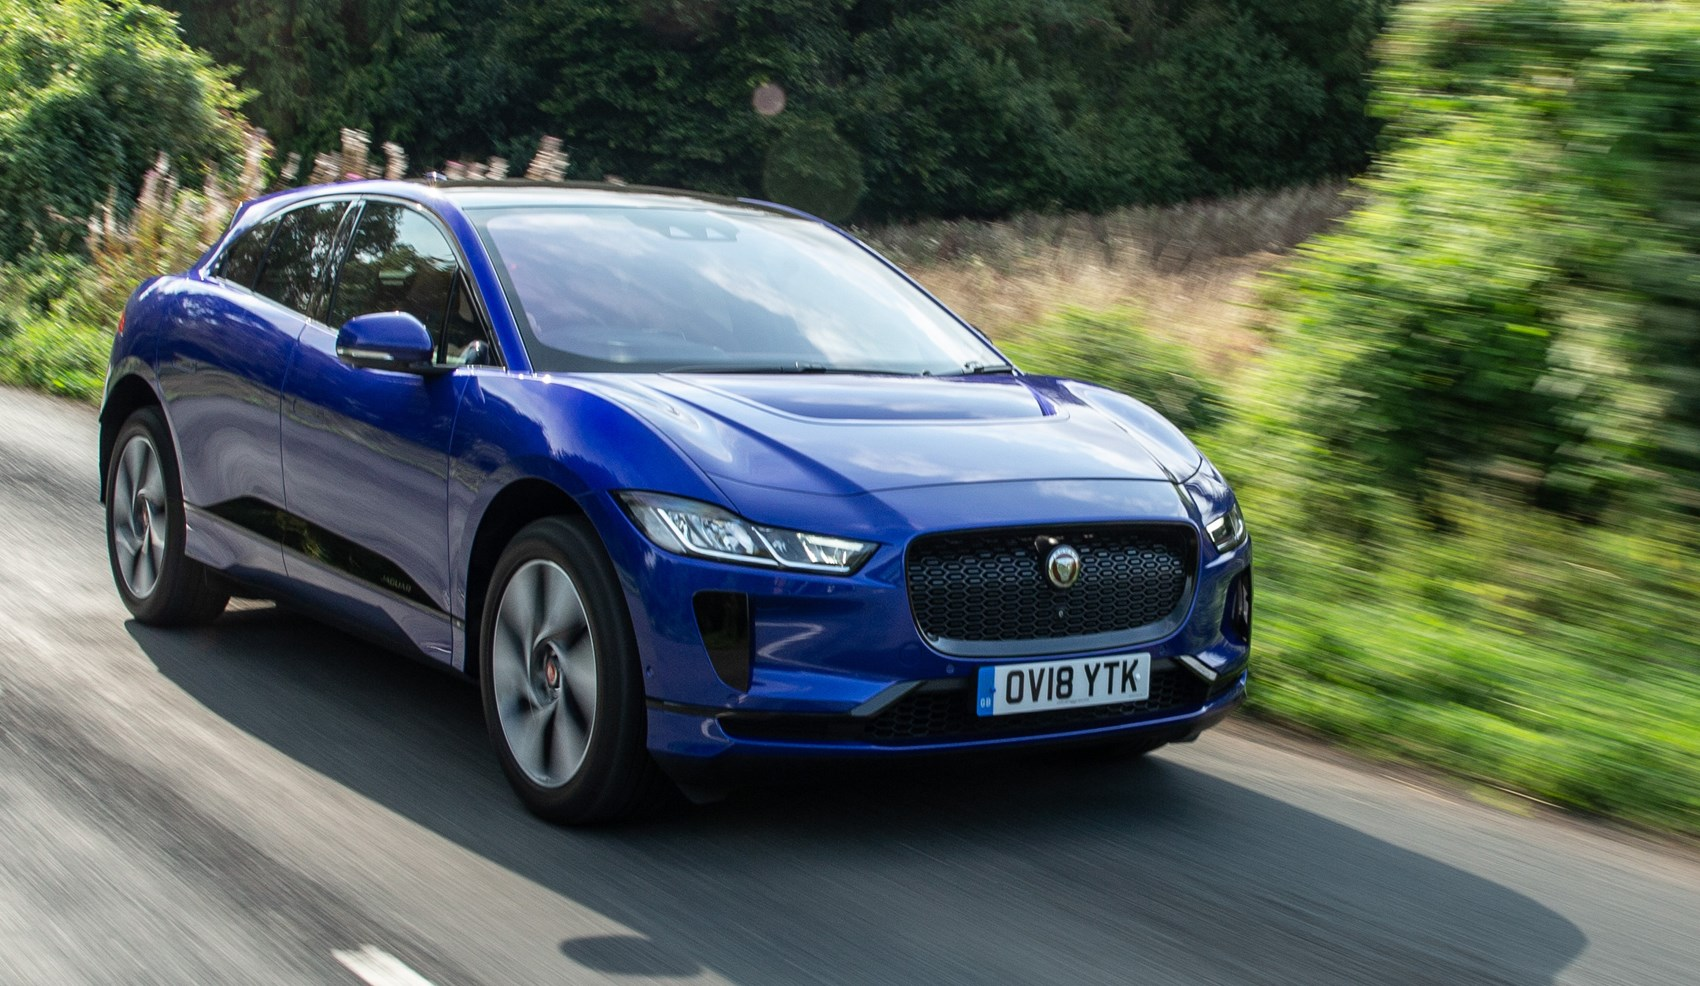 The Longest Range Electric Cars Of 2019 New Evs With The